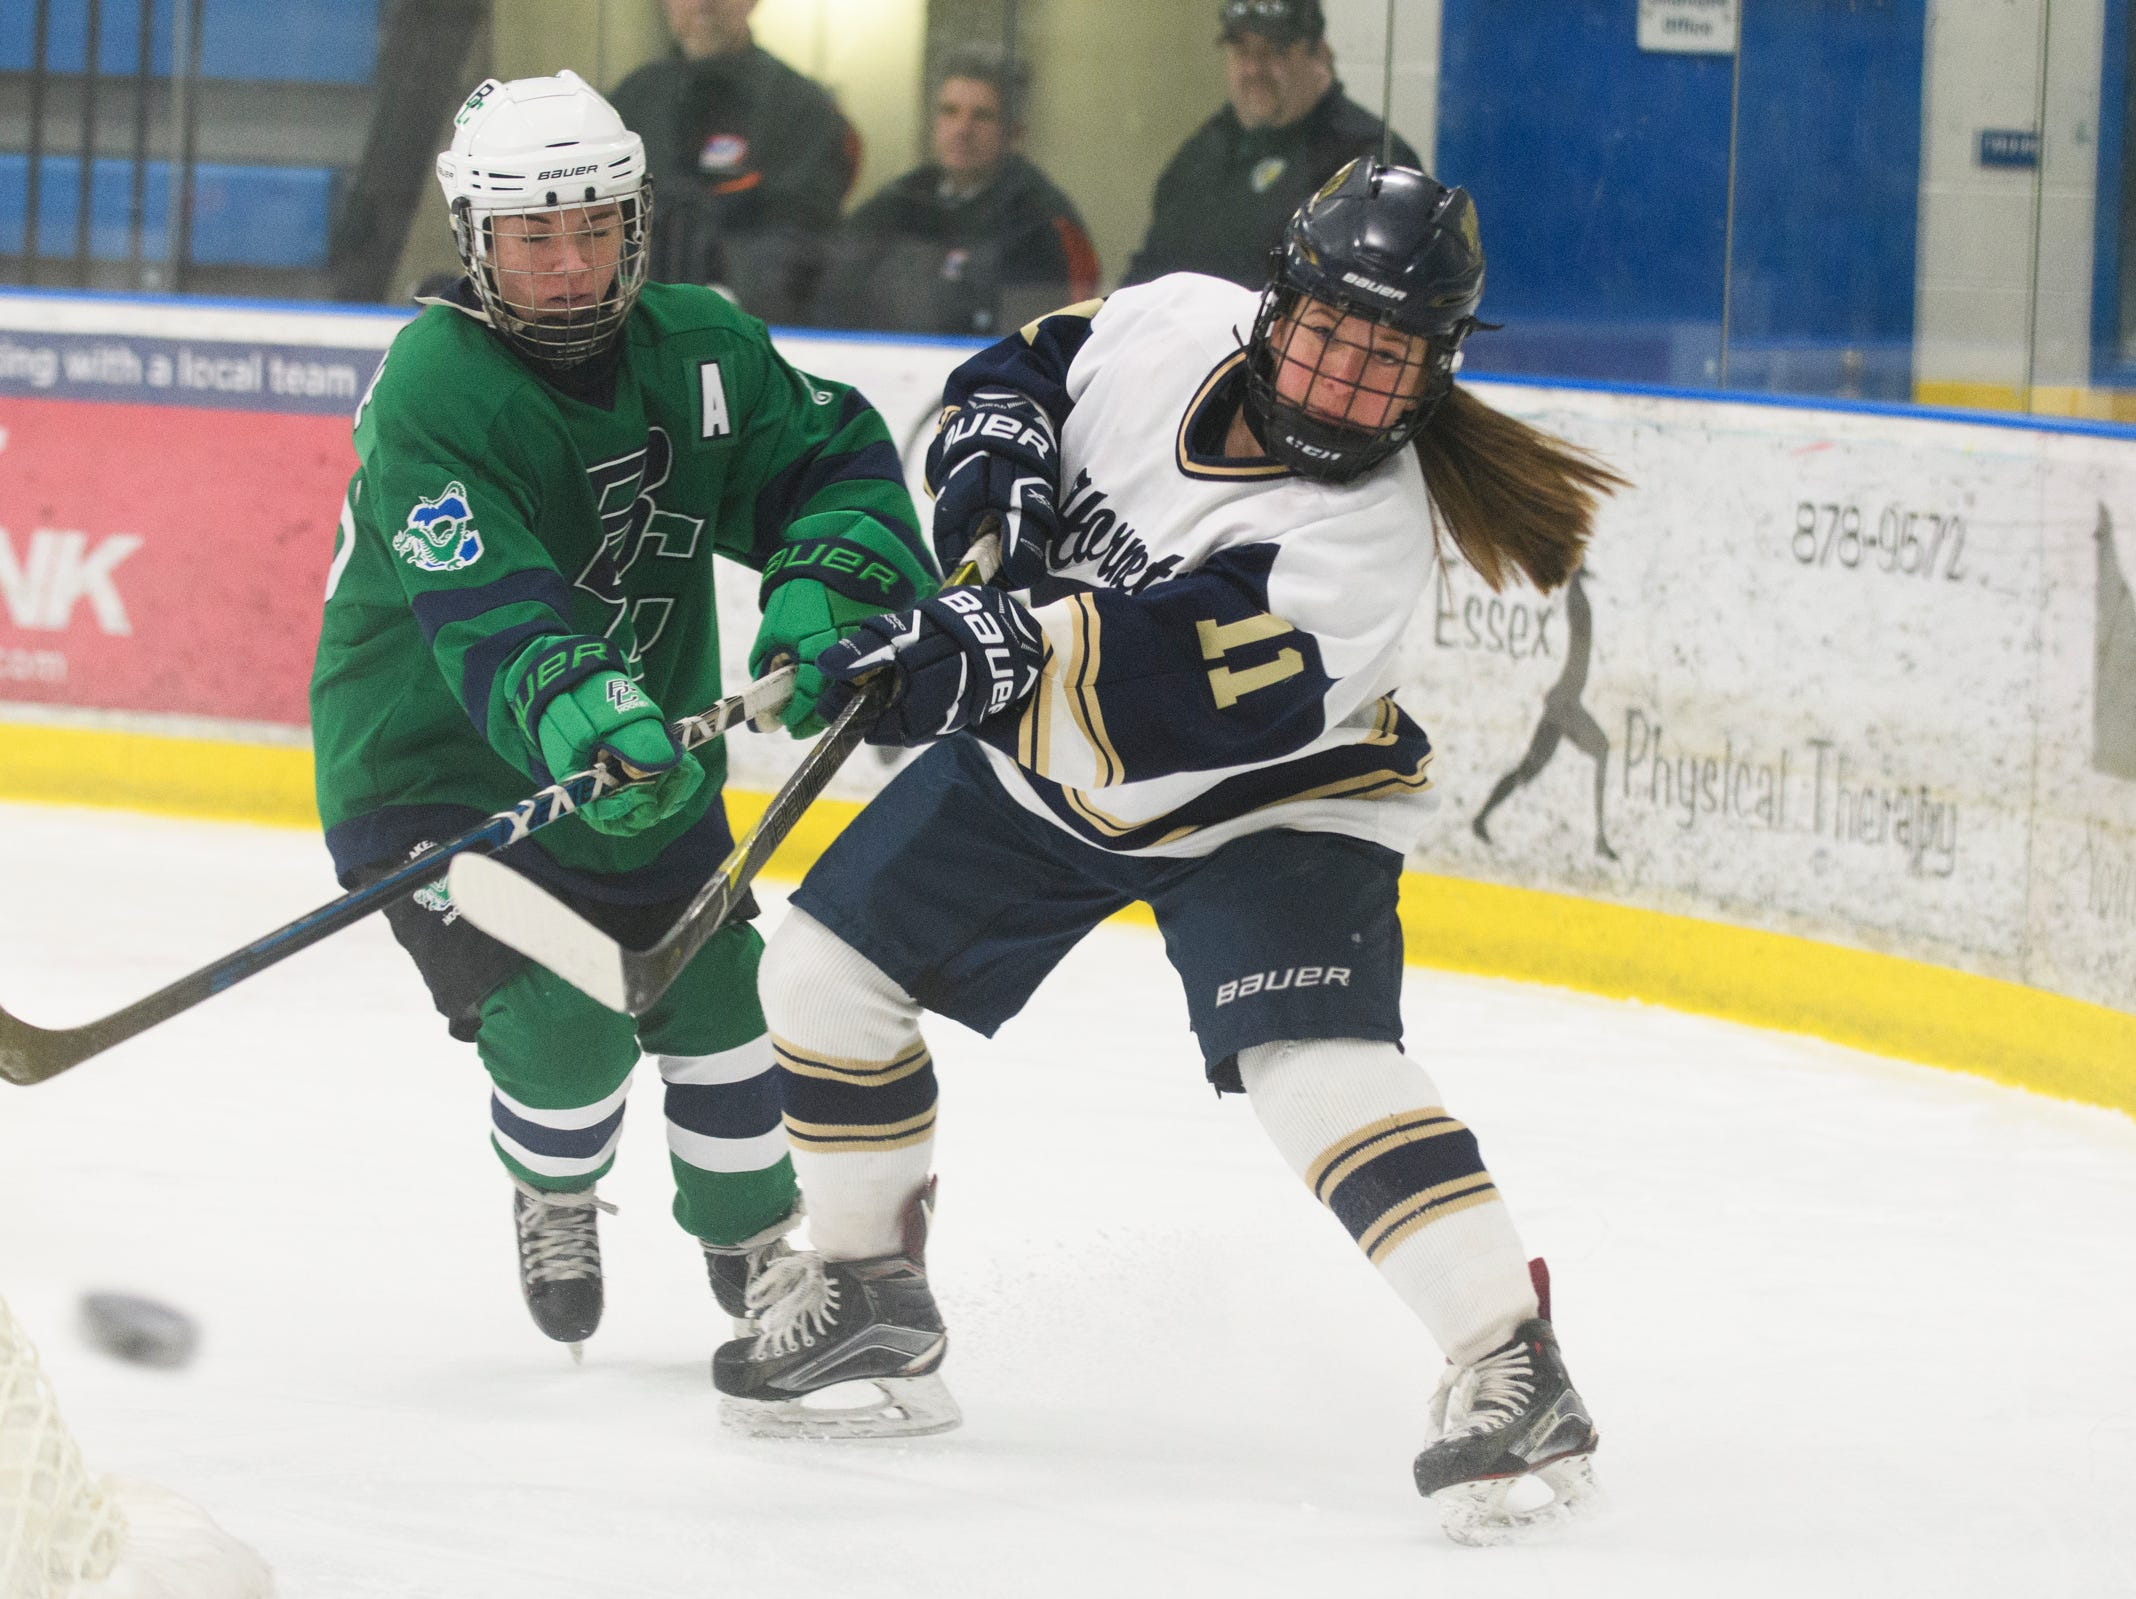 Essex's Francesca Martin (11) passes the puck as she skates past Burlington/Colchester's Olivia Maher (10) during the girls semi final hockey game between the Burlington/Colchester Sea Lakers vs. Essex Hornets at Essex skating rink on Saturday afternoon March 9, 2019 in Essex, Vermont.